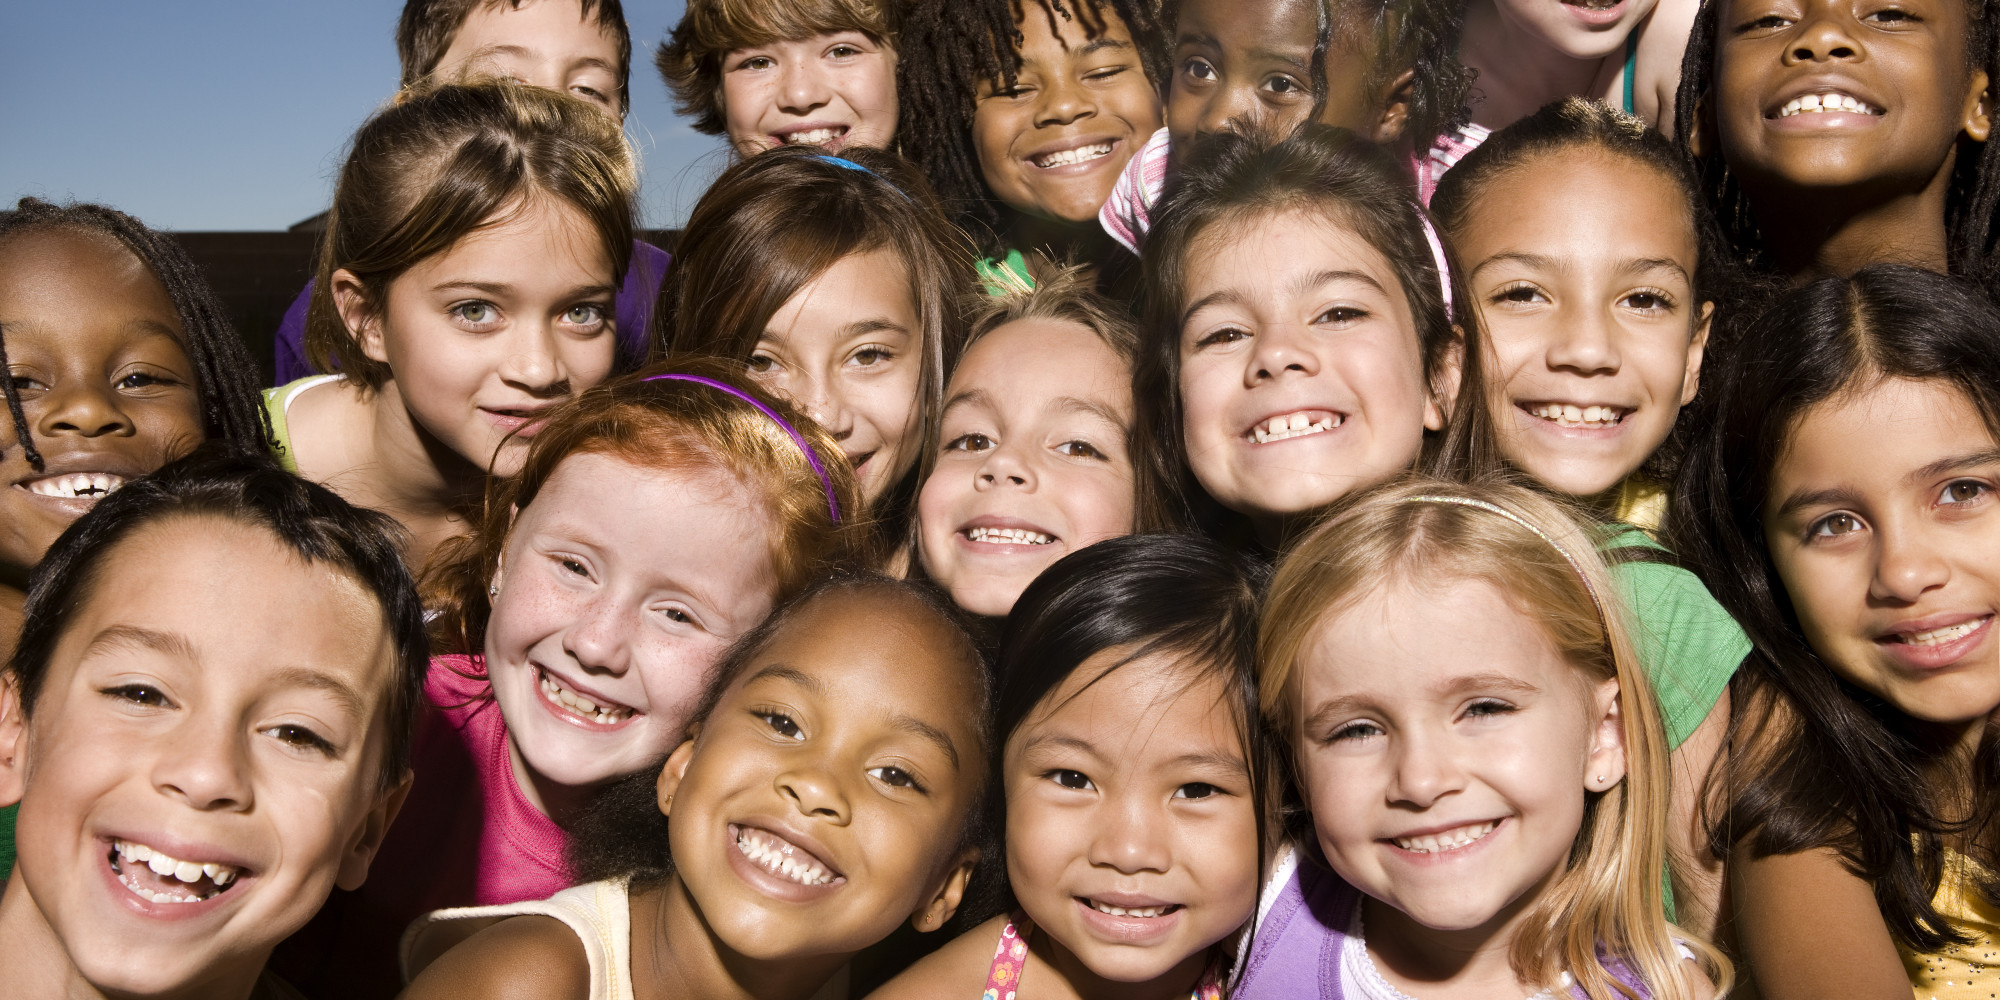 Let's Make 2014 the Year of the Child | HuffPost